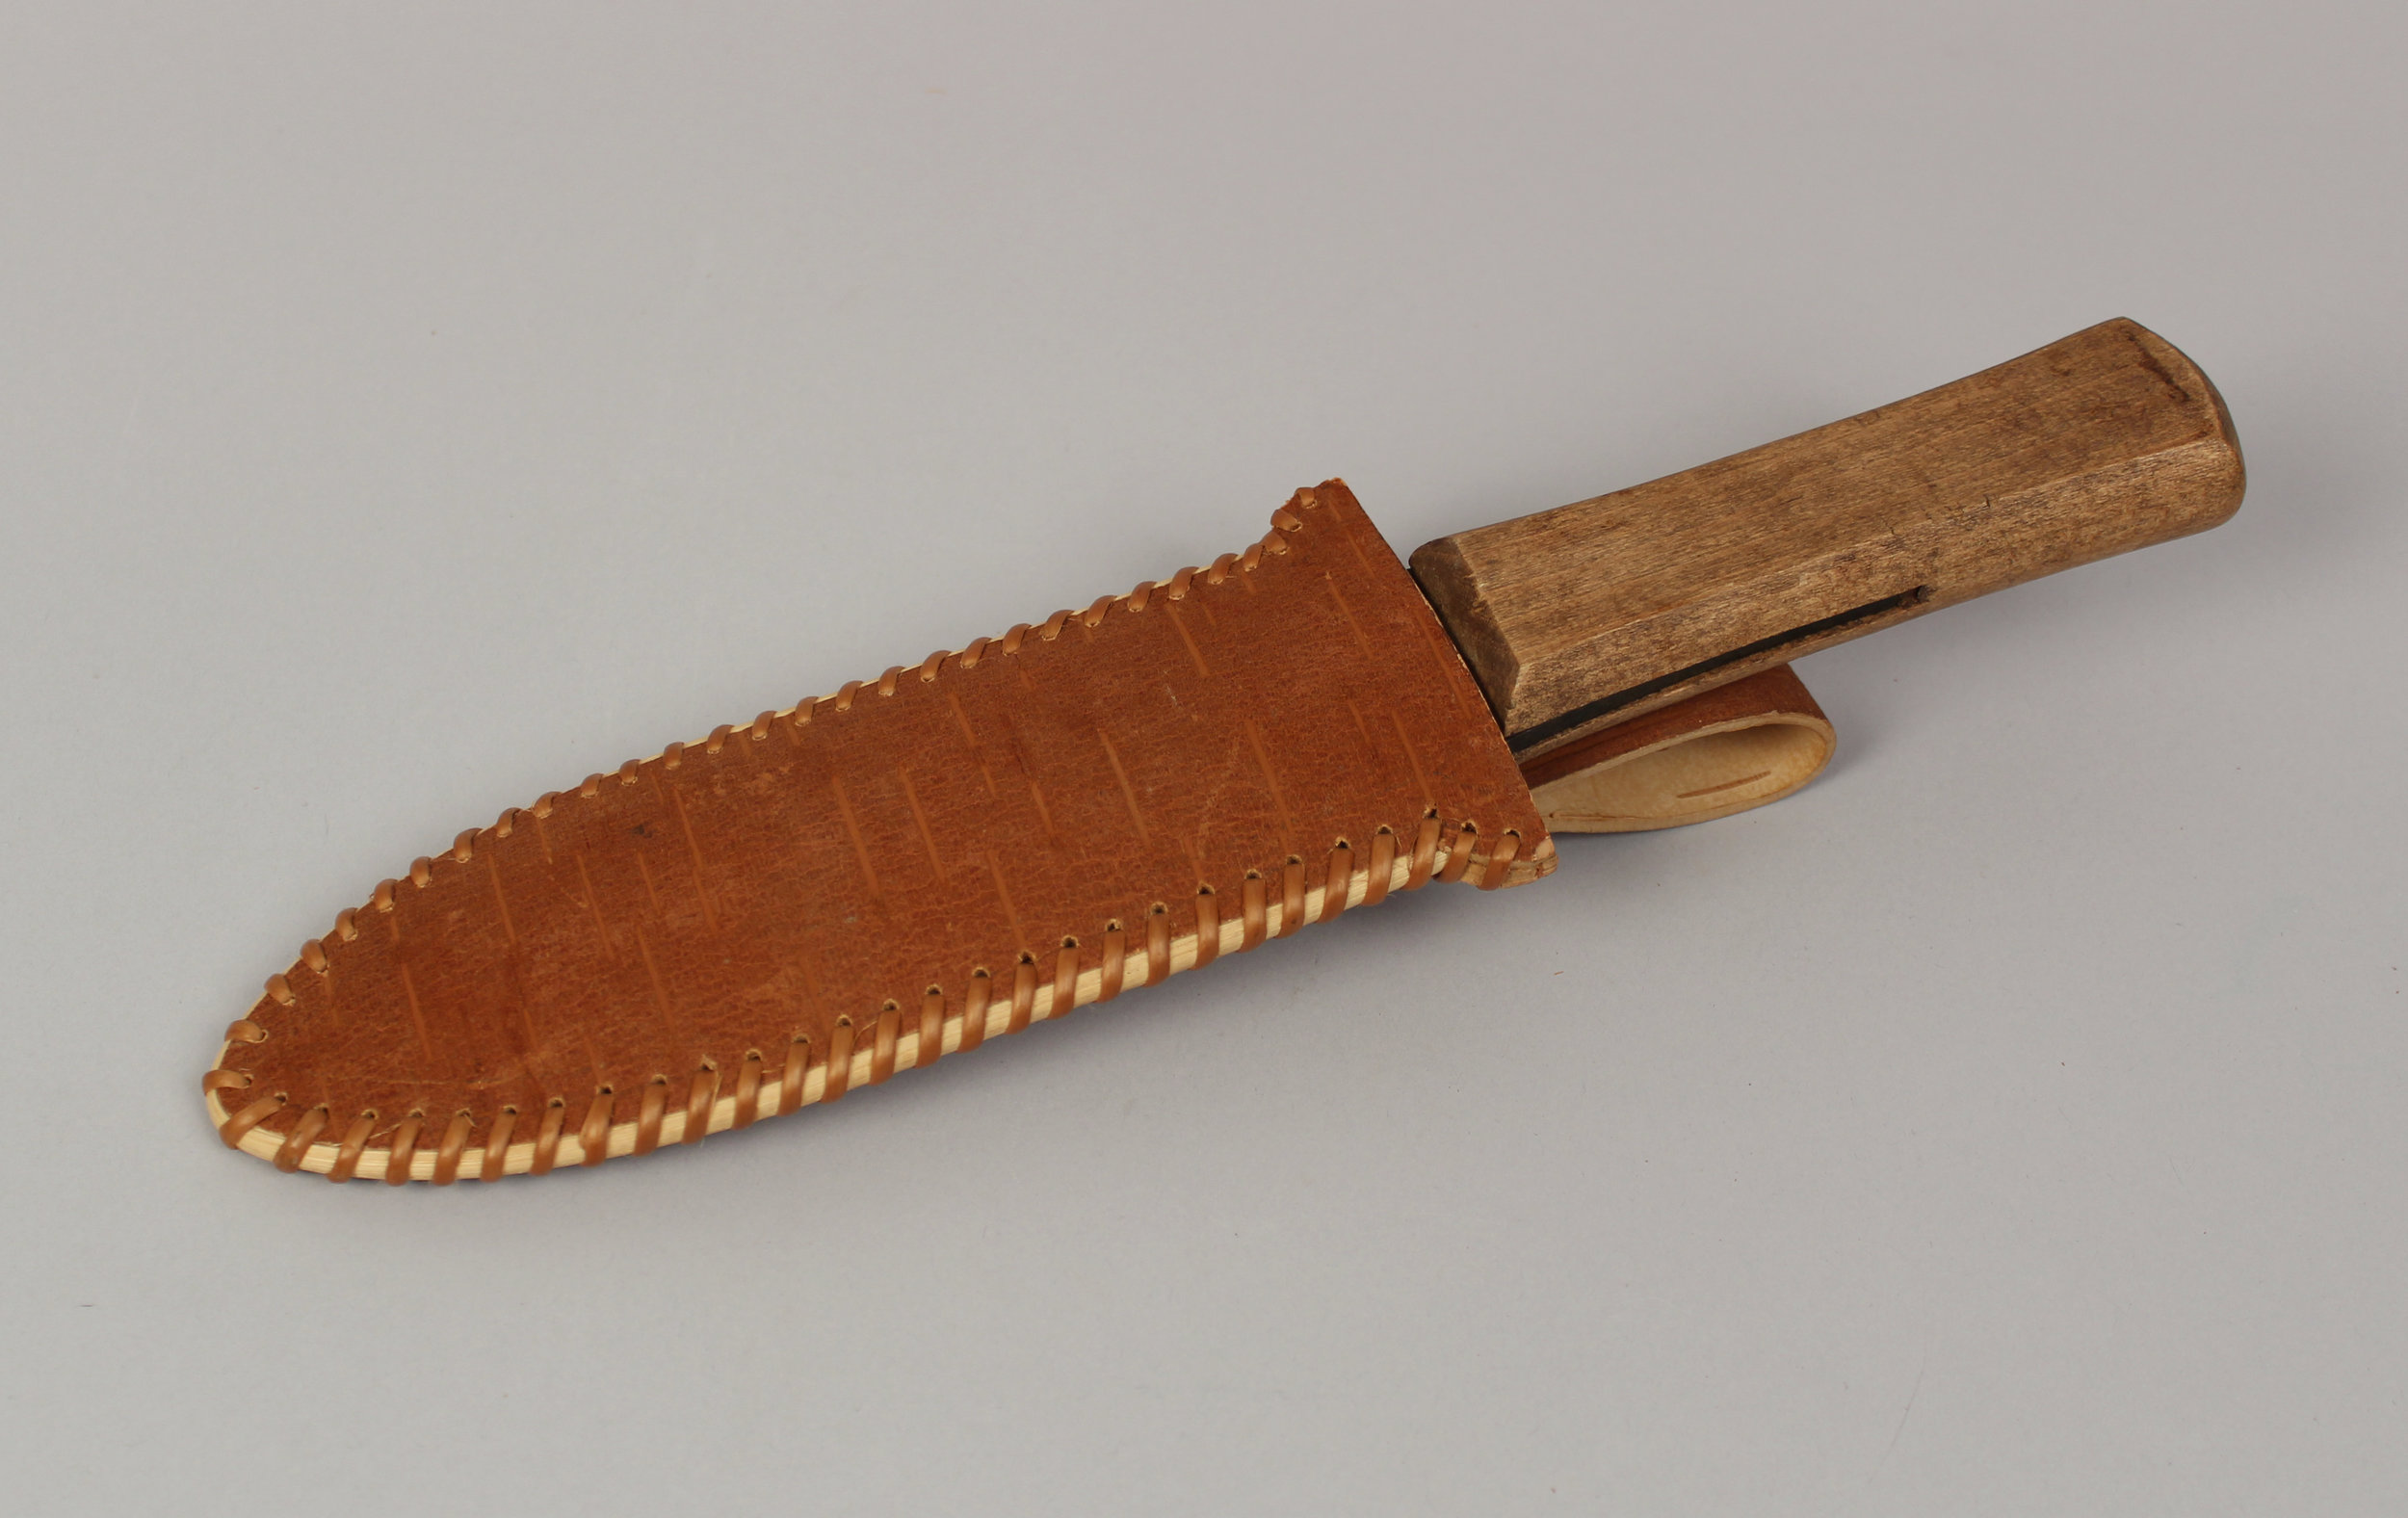 David knife sheath v1.jpg